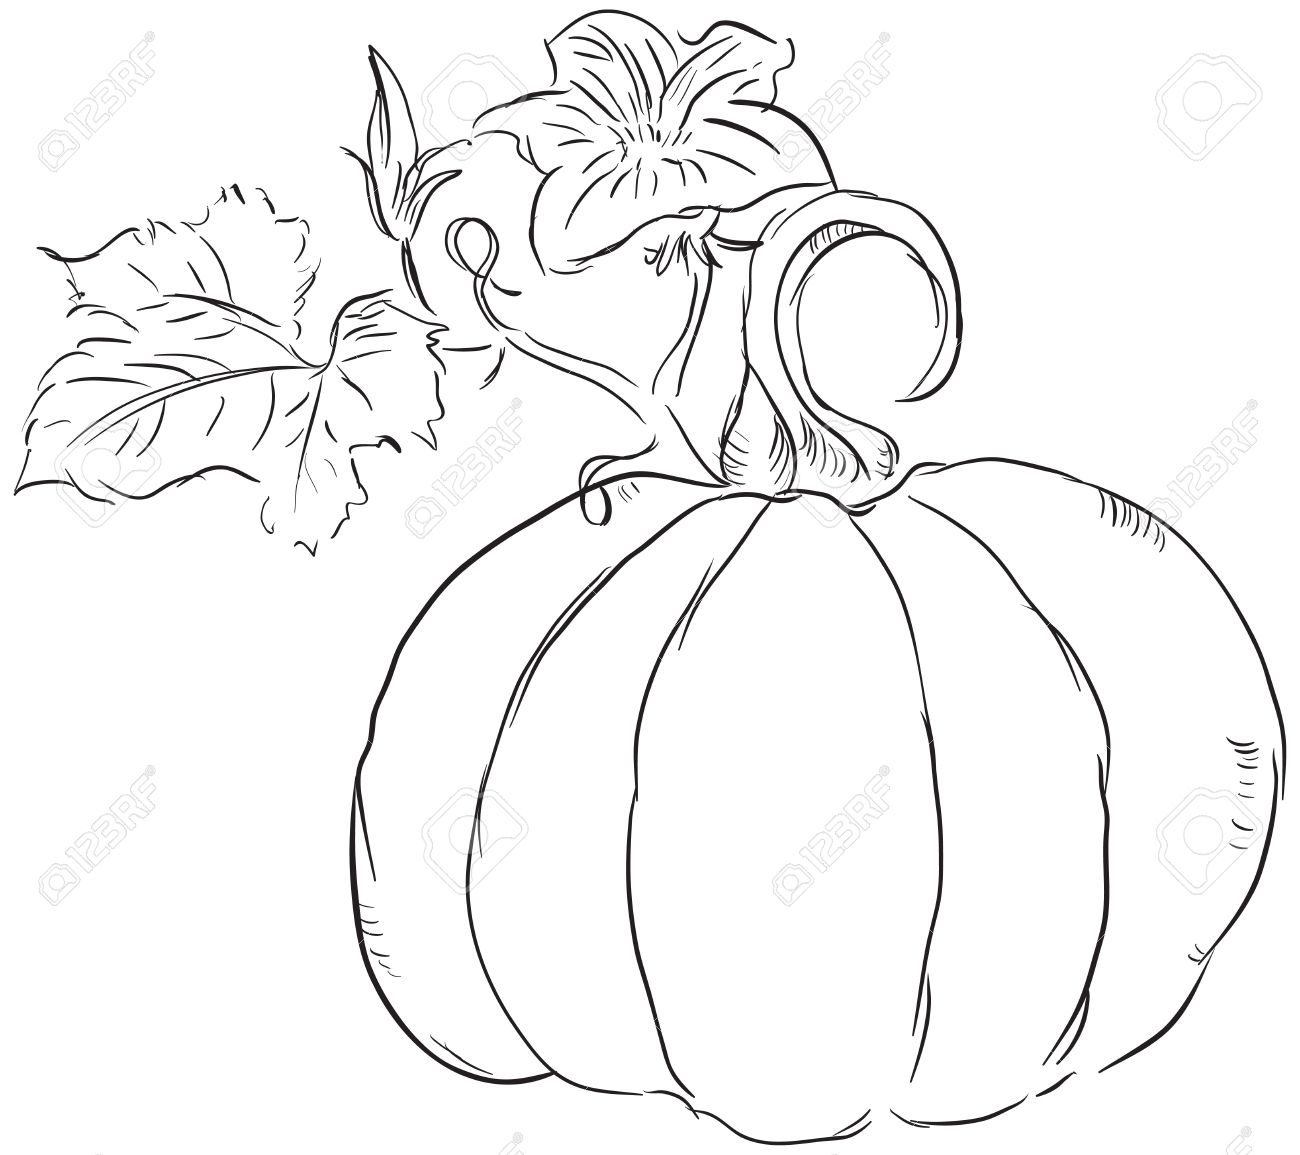 1300x1155 The Fruit Of The Pumpkin With Leaves And Blossoms Ovary. Royalty